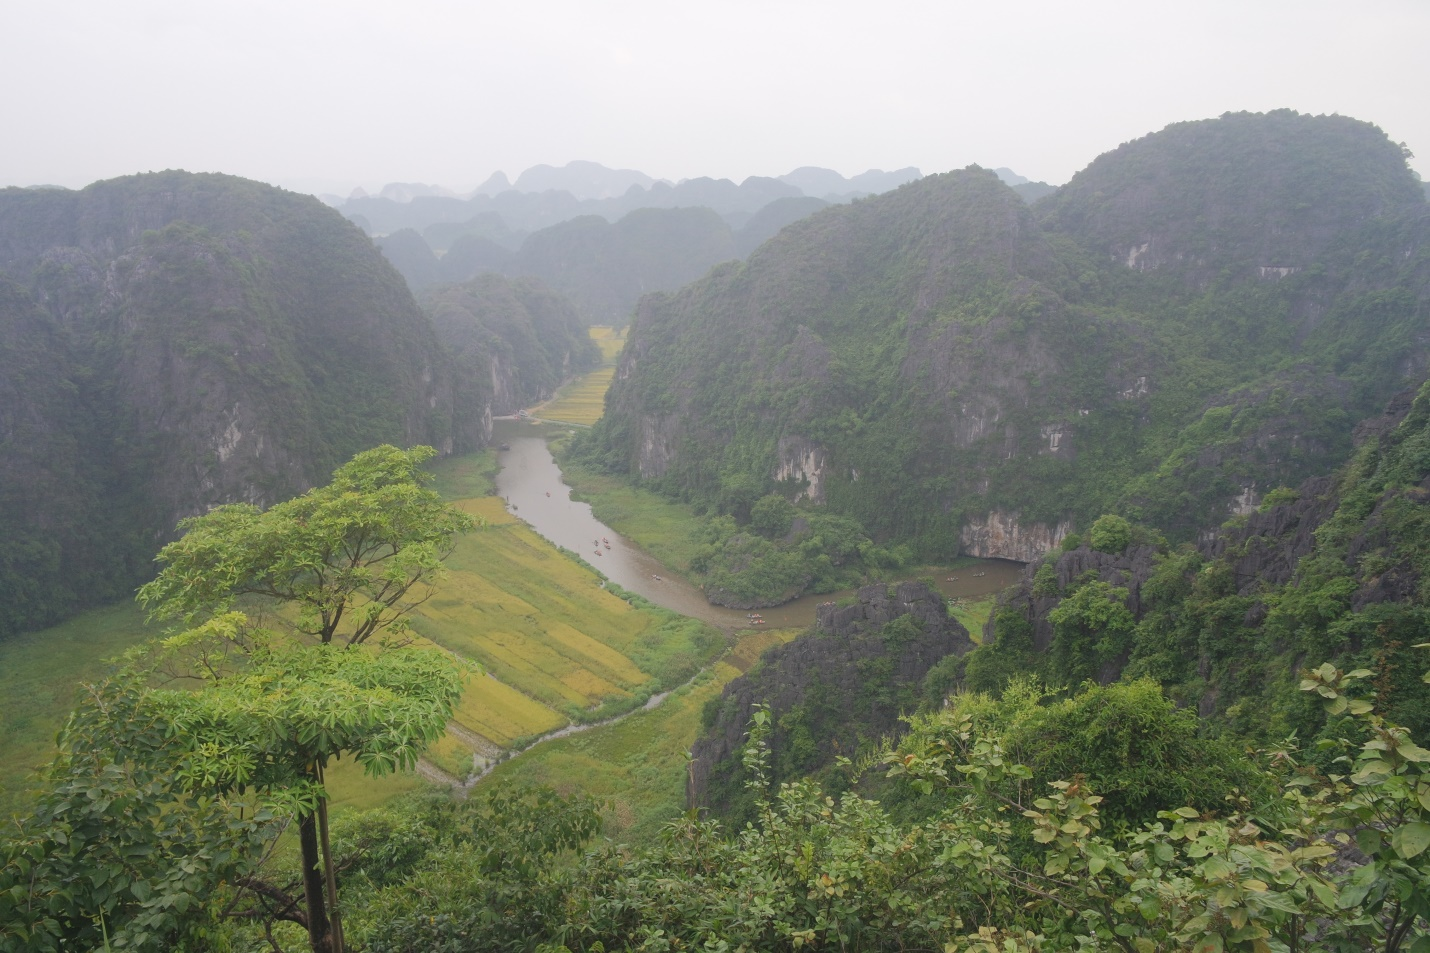 Tam Coc and Dancing Cave to make up a day in Ninh Binh